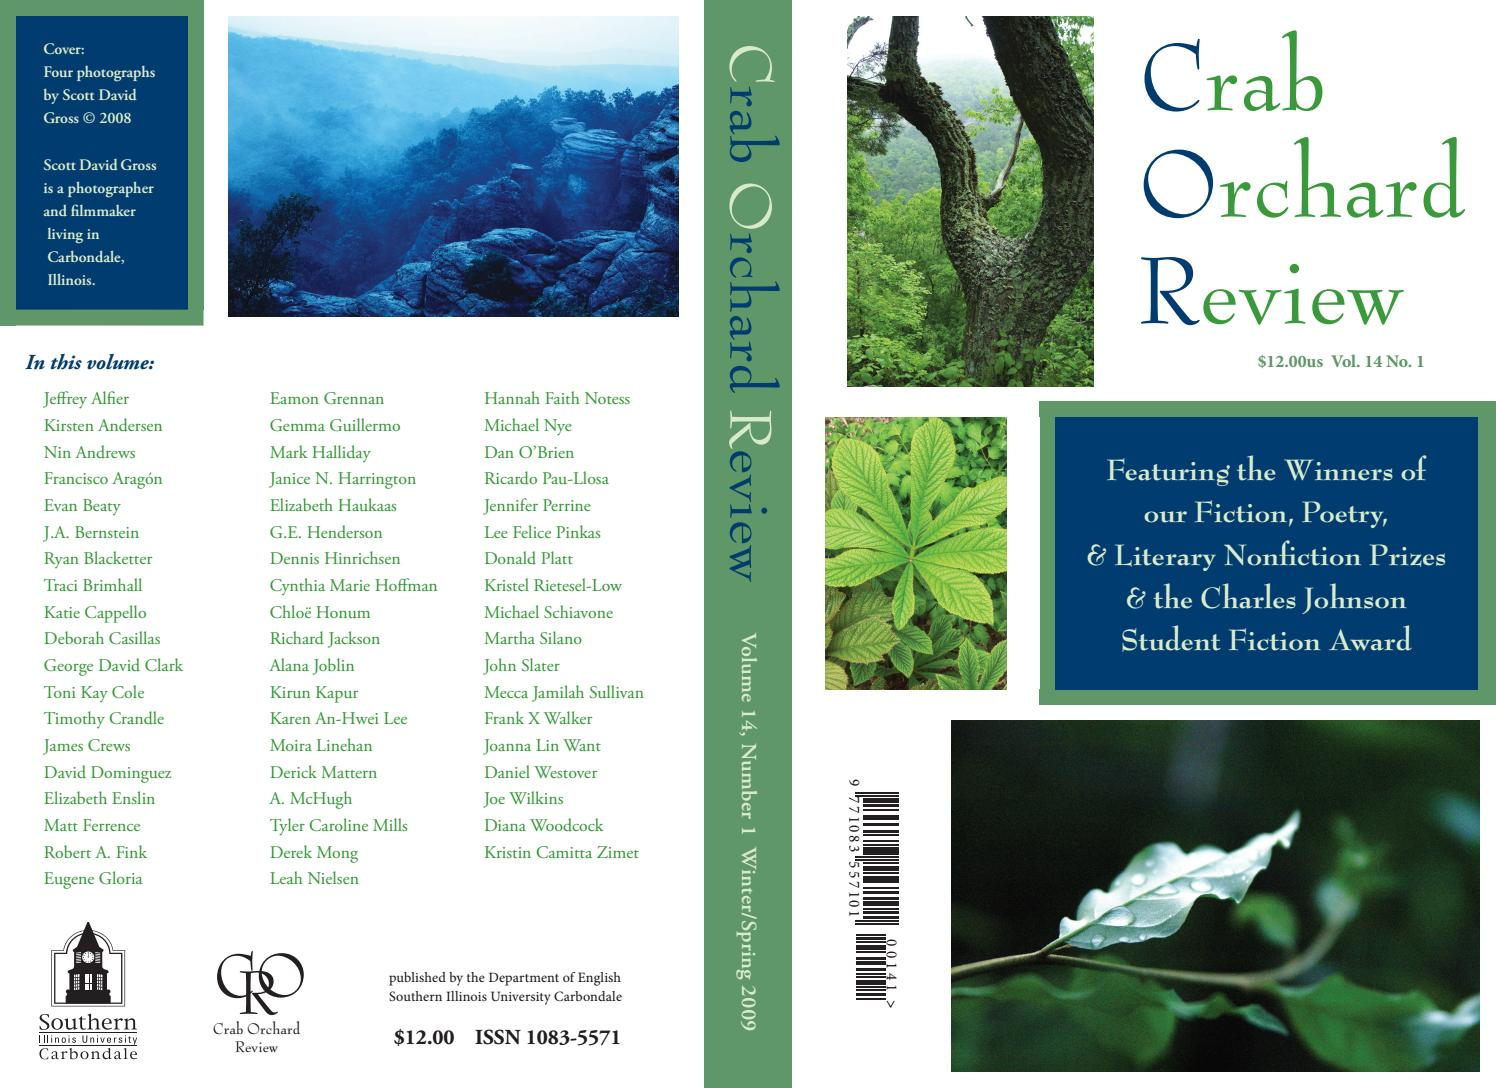 Crab Orchard Review Vol 14 No 1 WS 2009 by Crab Orchard